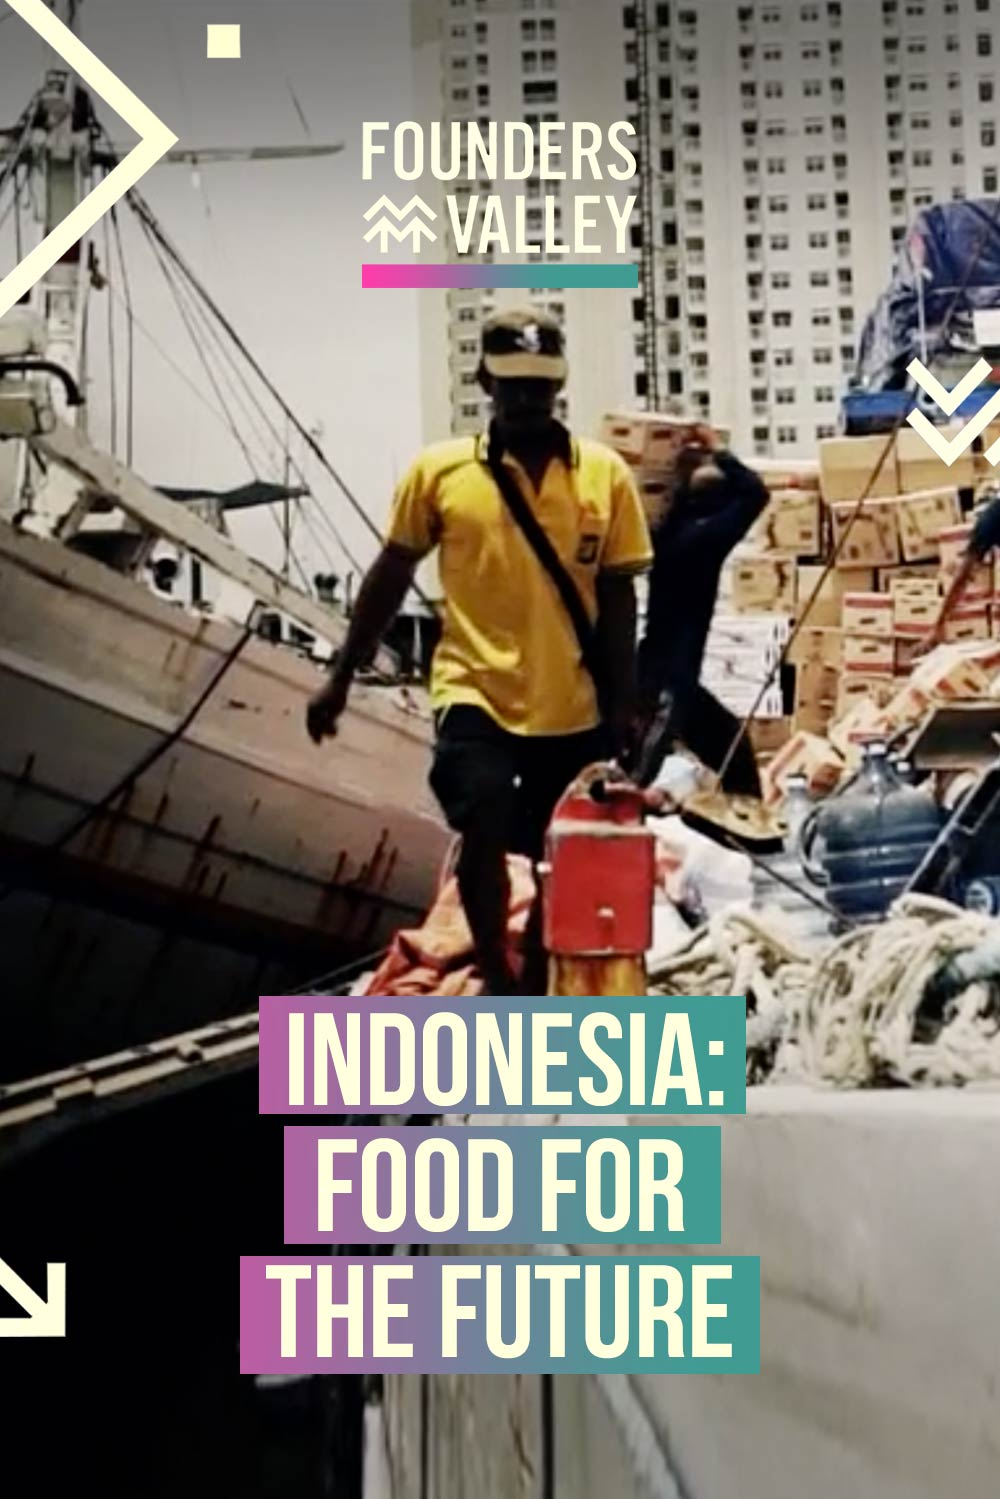 Founders' Valley: Food for the Future, Indonesia